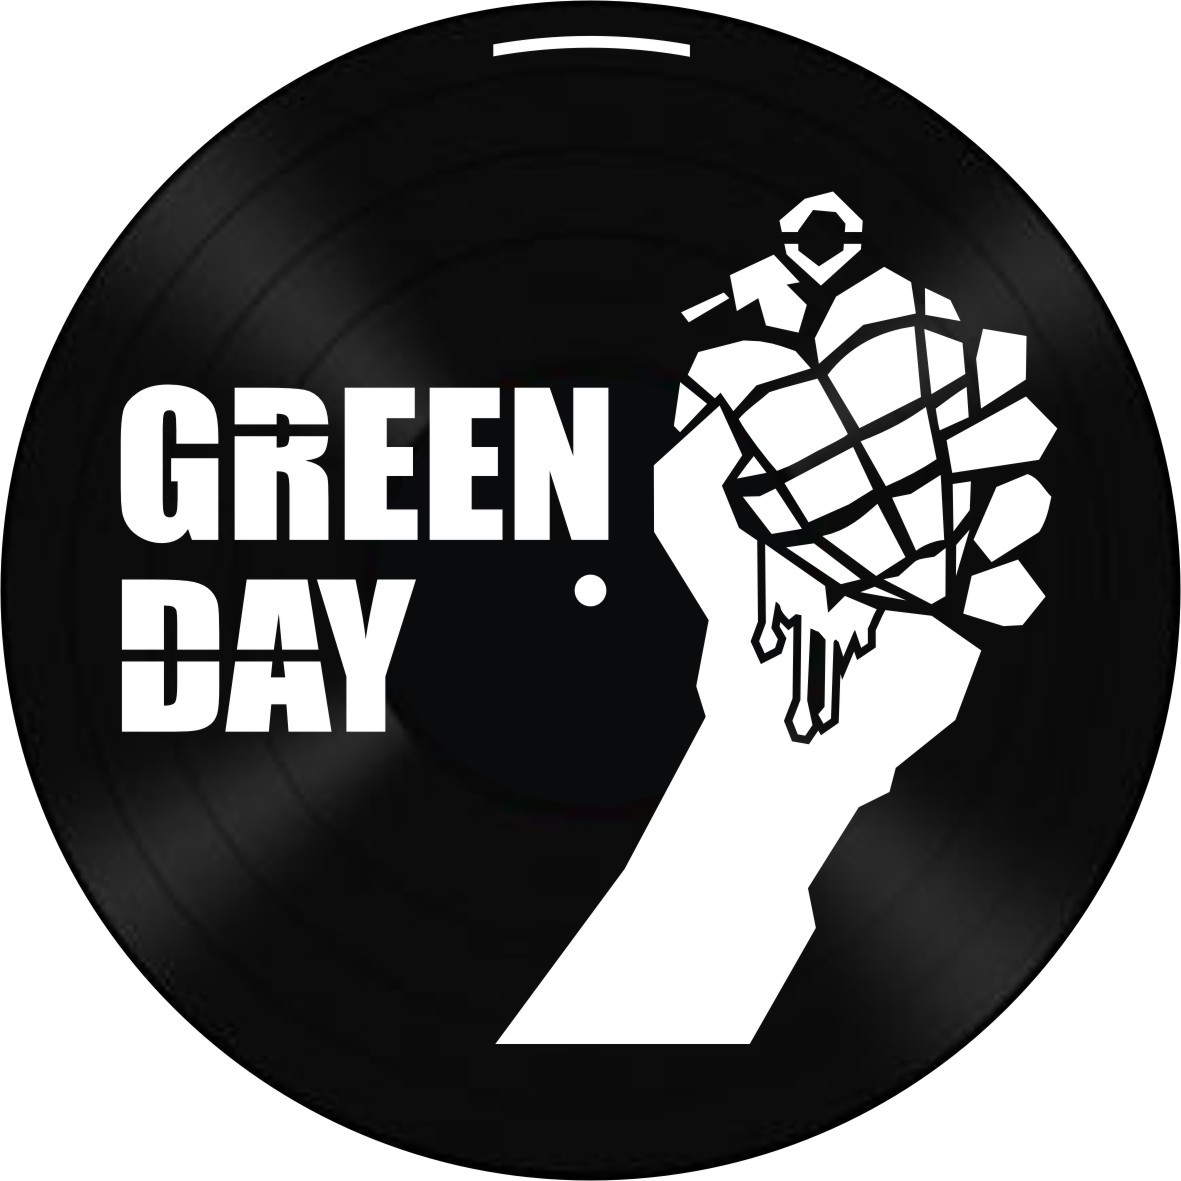 Disco de Vinil Decorativo Green Day